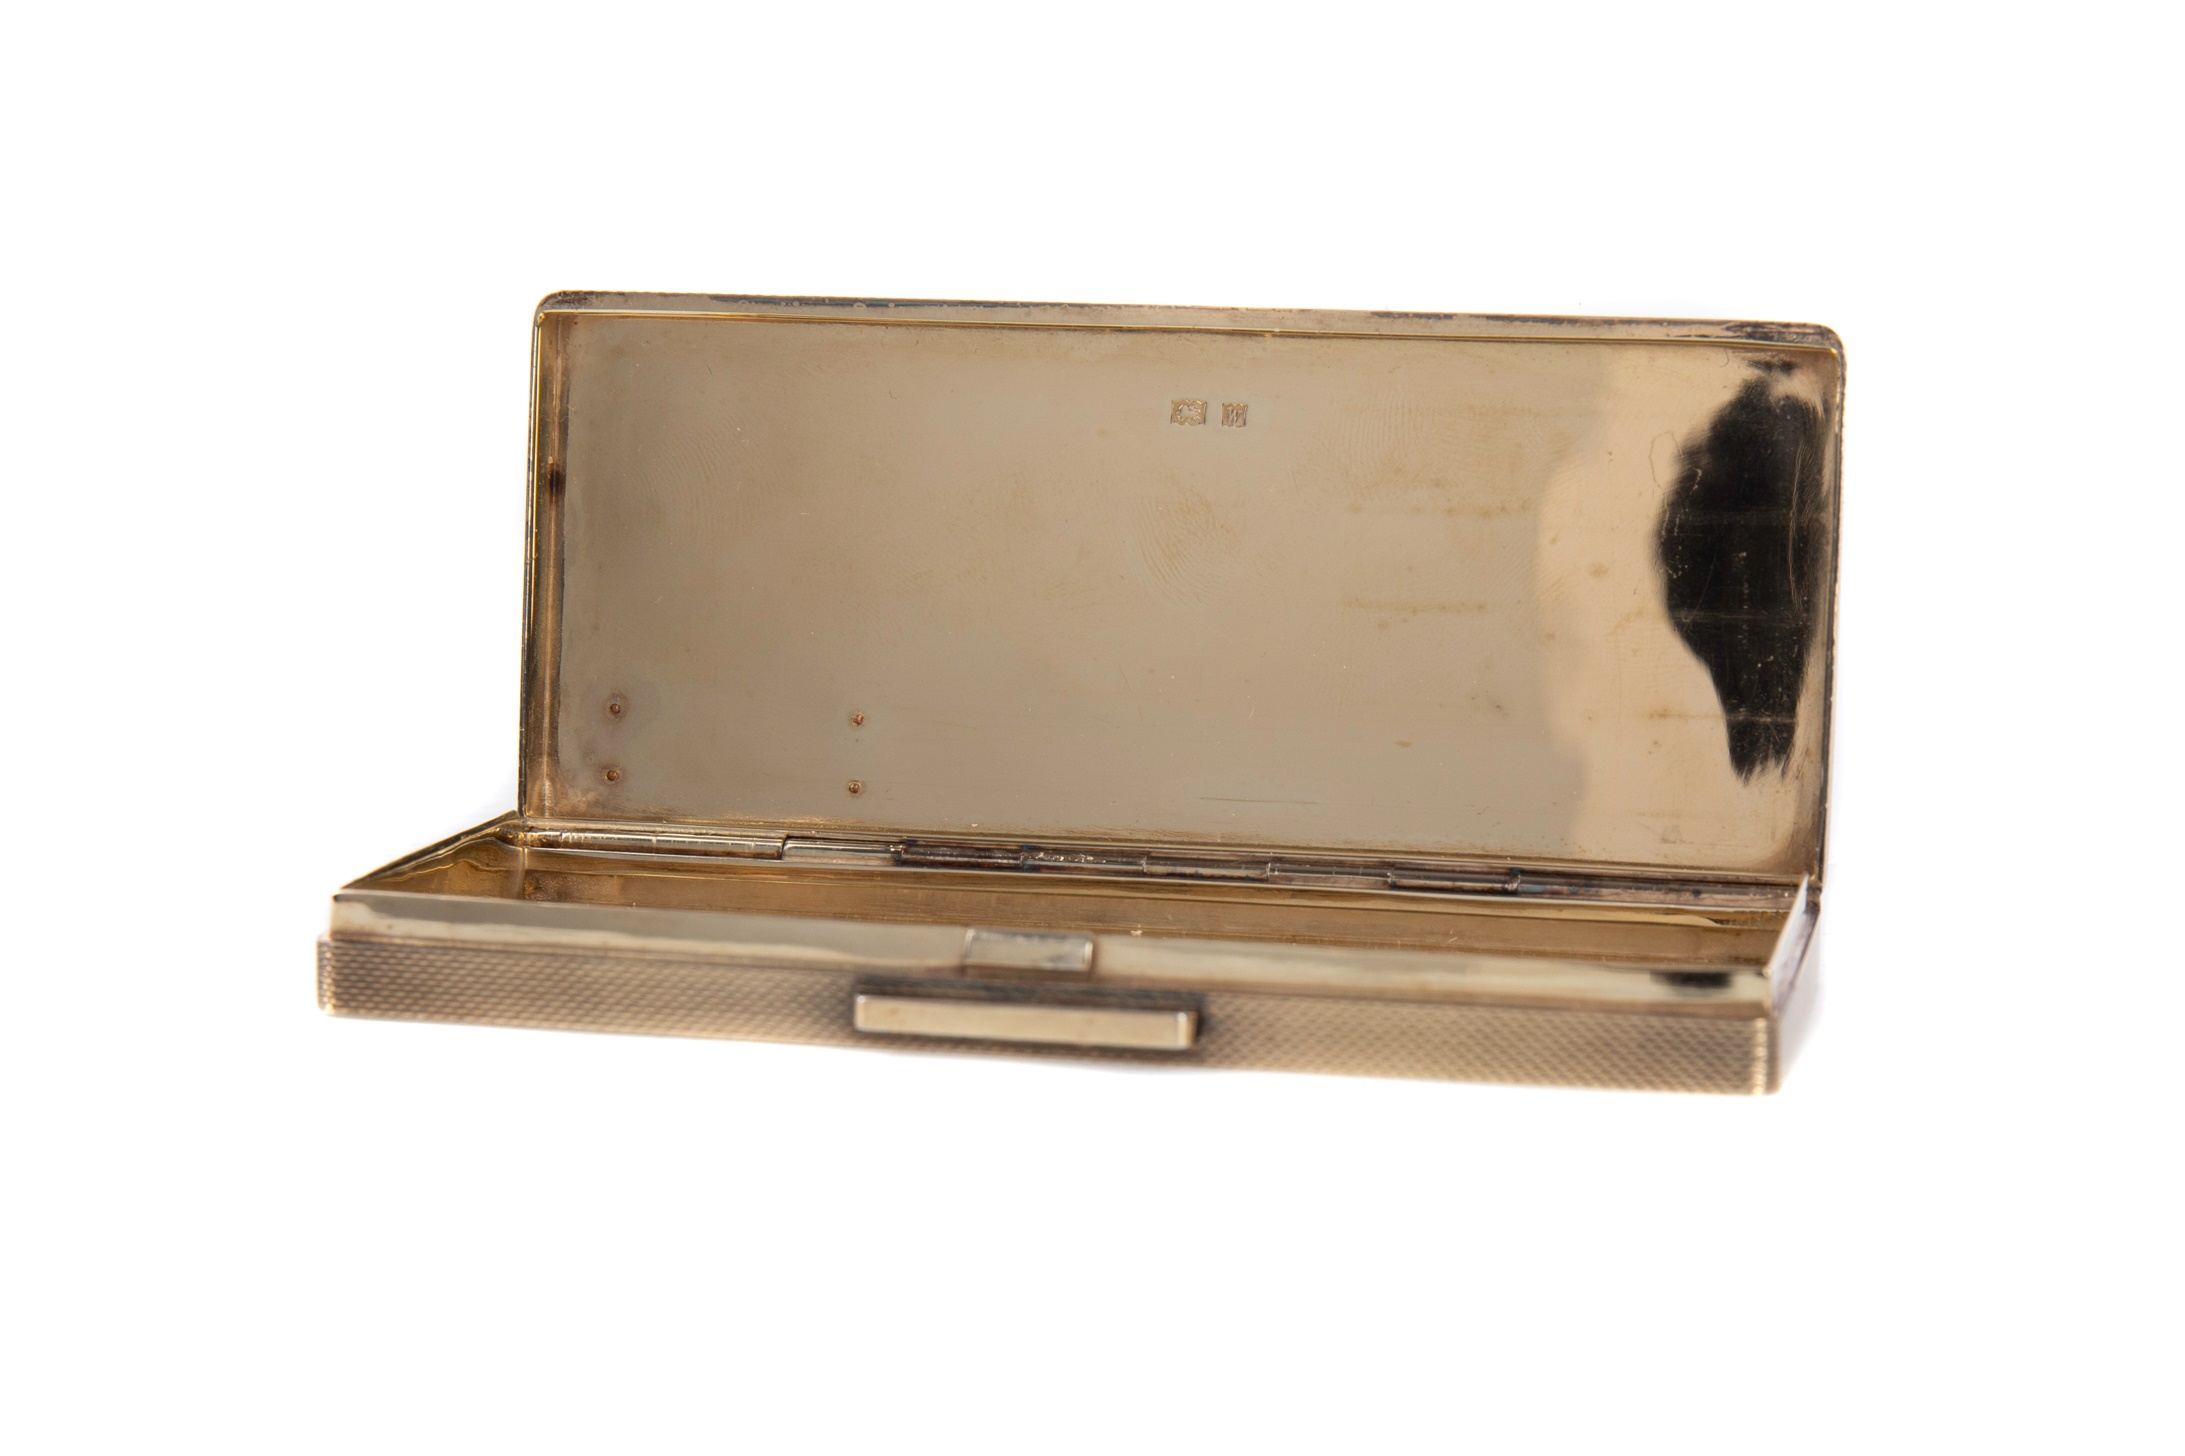 AN ELIZABETH II SILVER GILT CIGARETTE CASE BY DUNHILL - Image 2 of 2